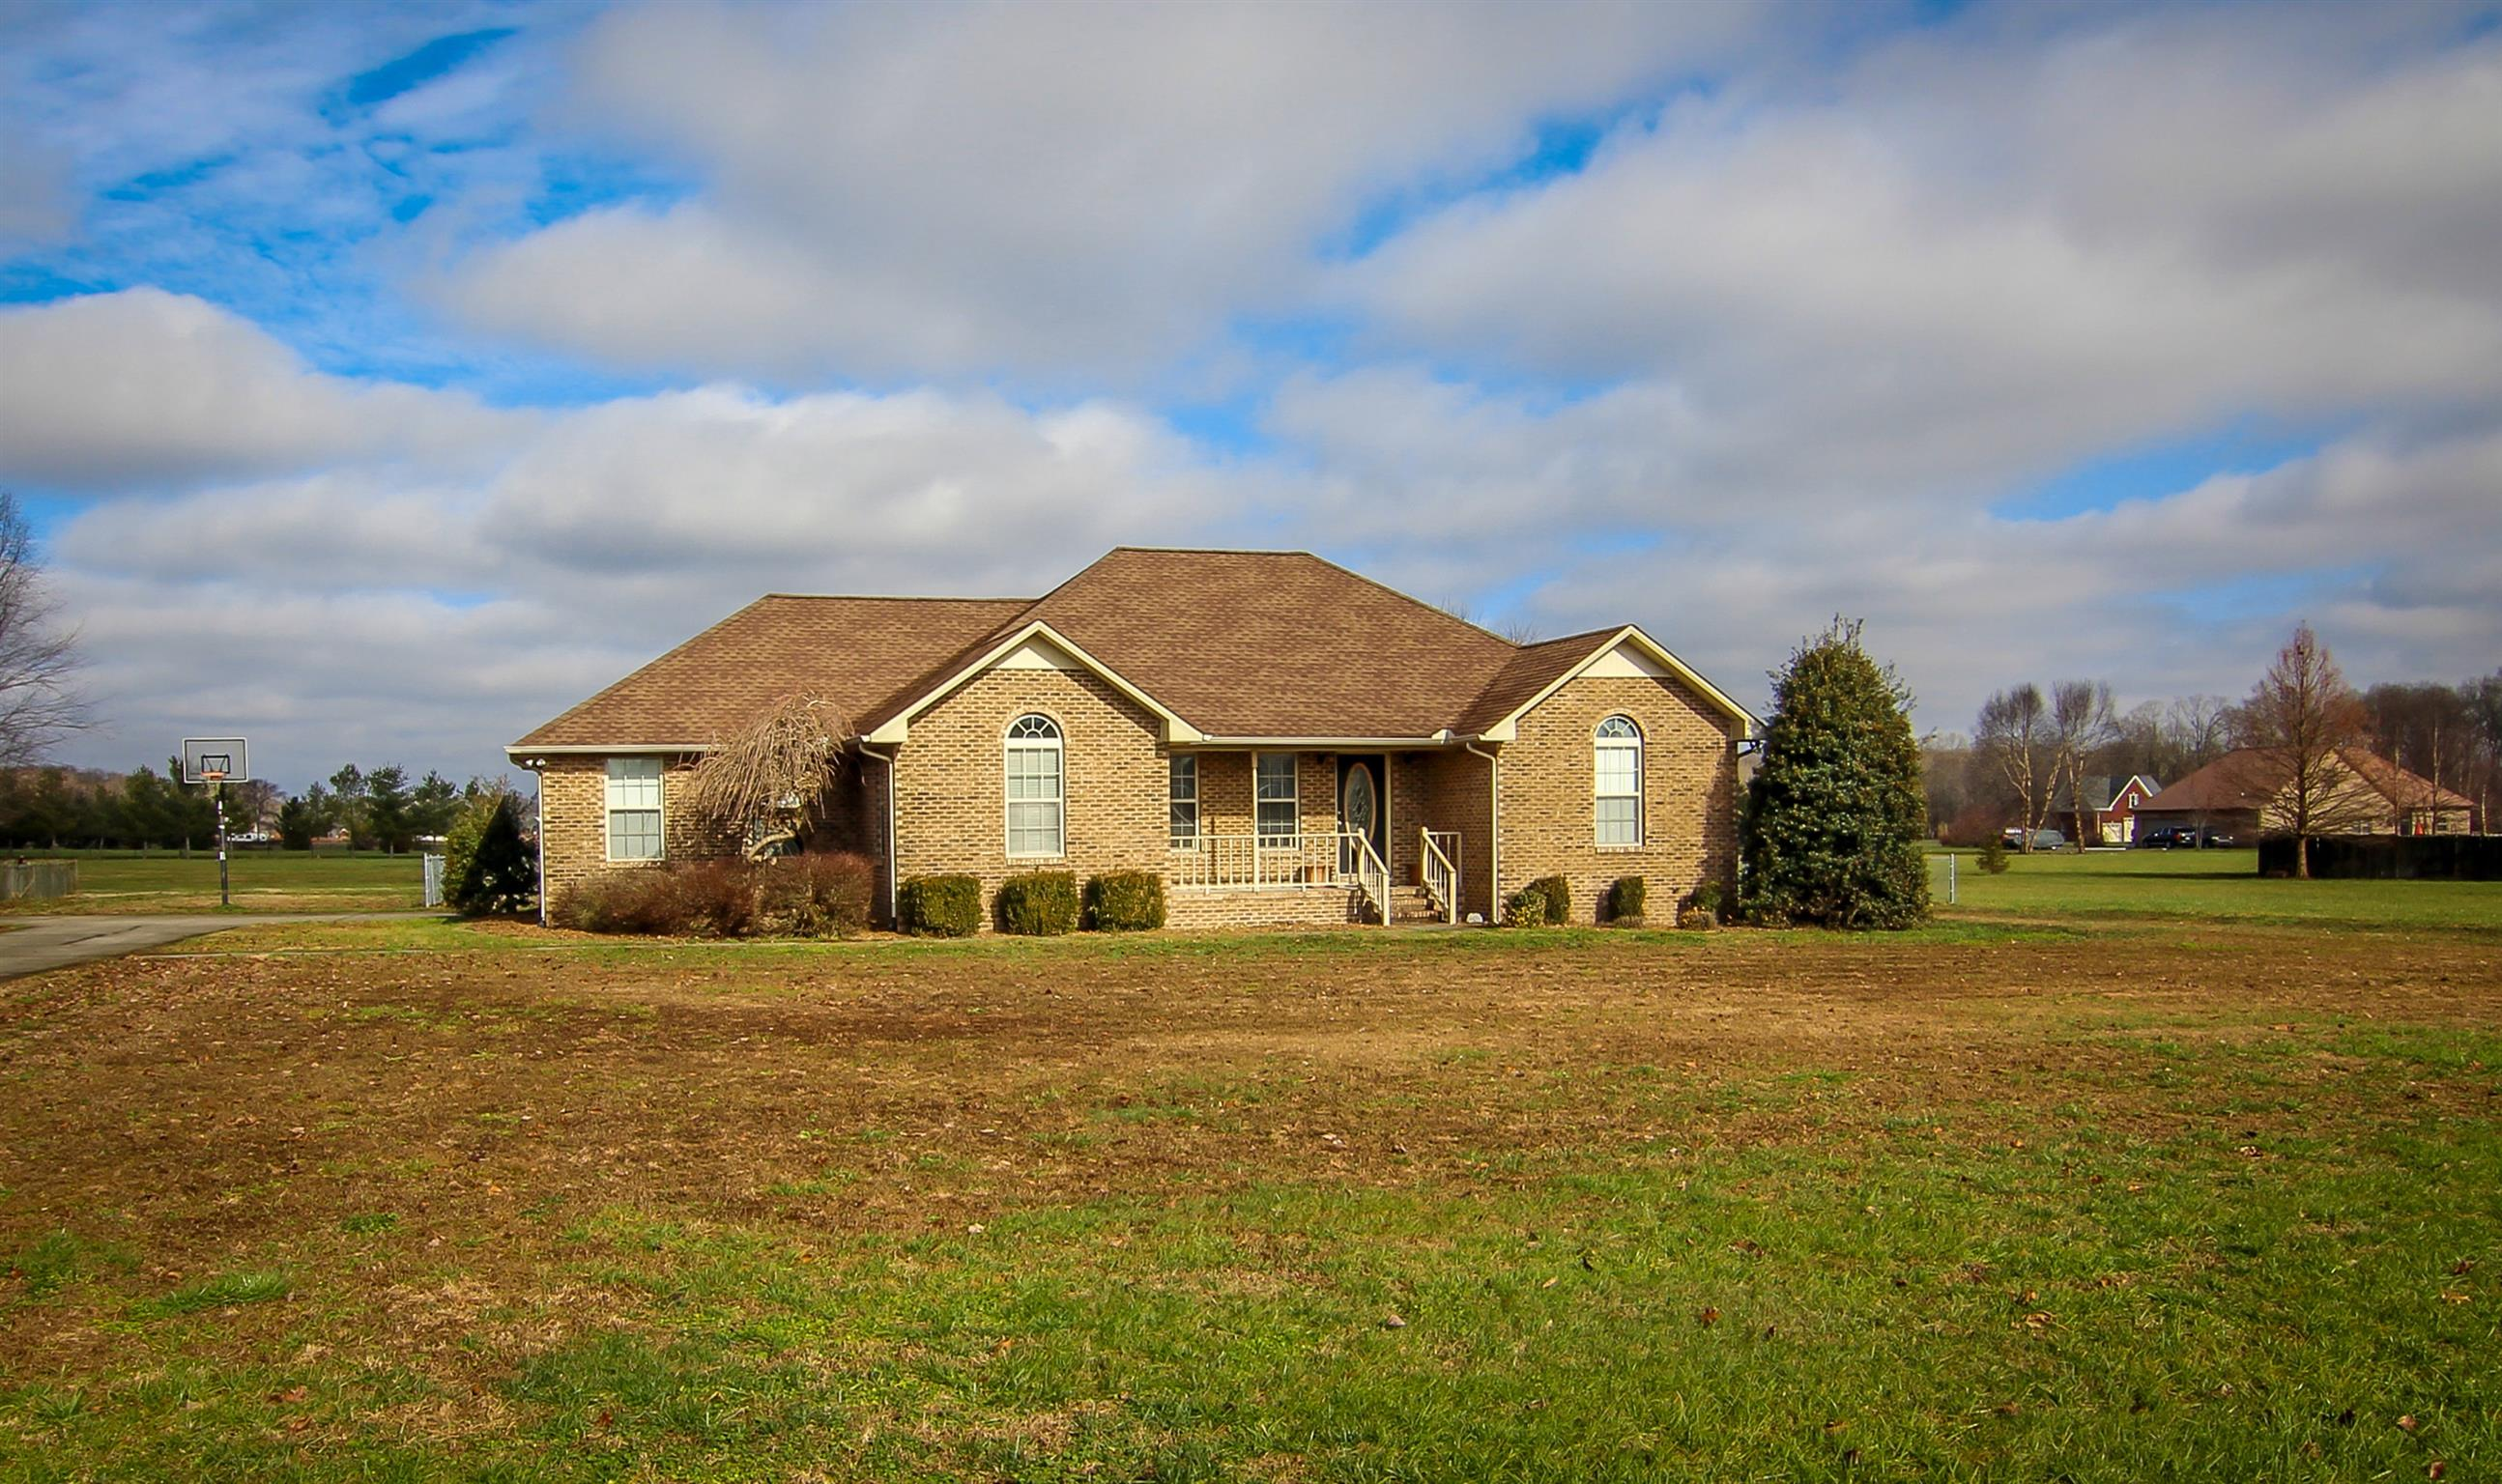 190 Lester Ln, Manchester, Tennessee